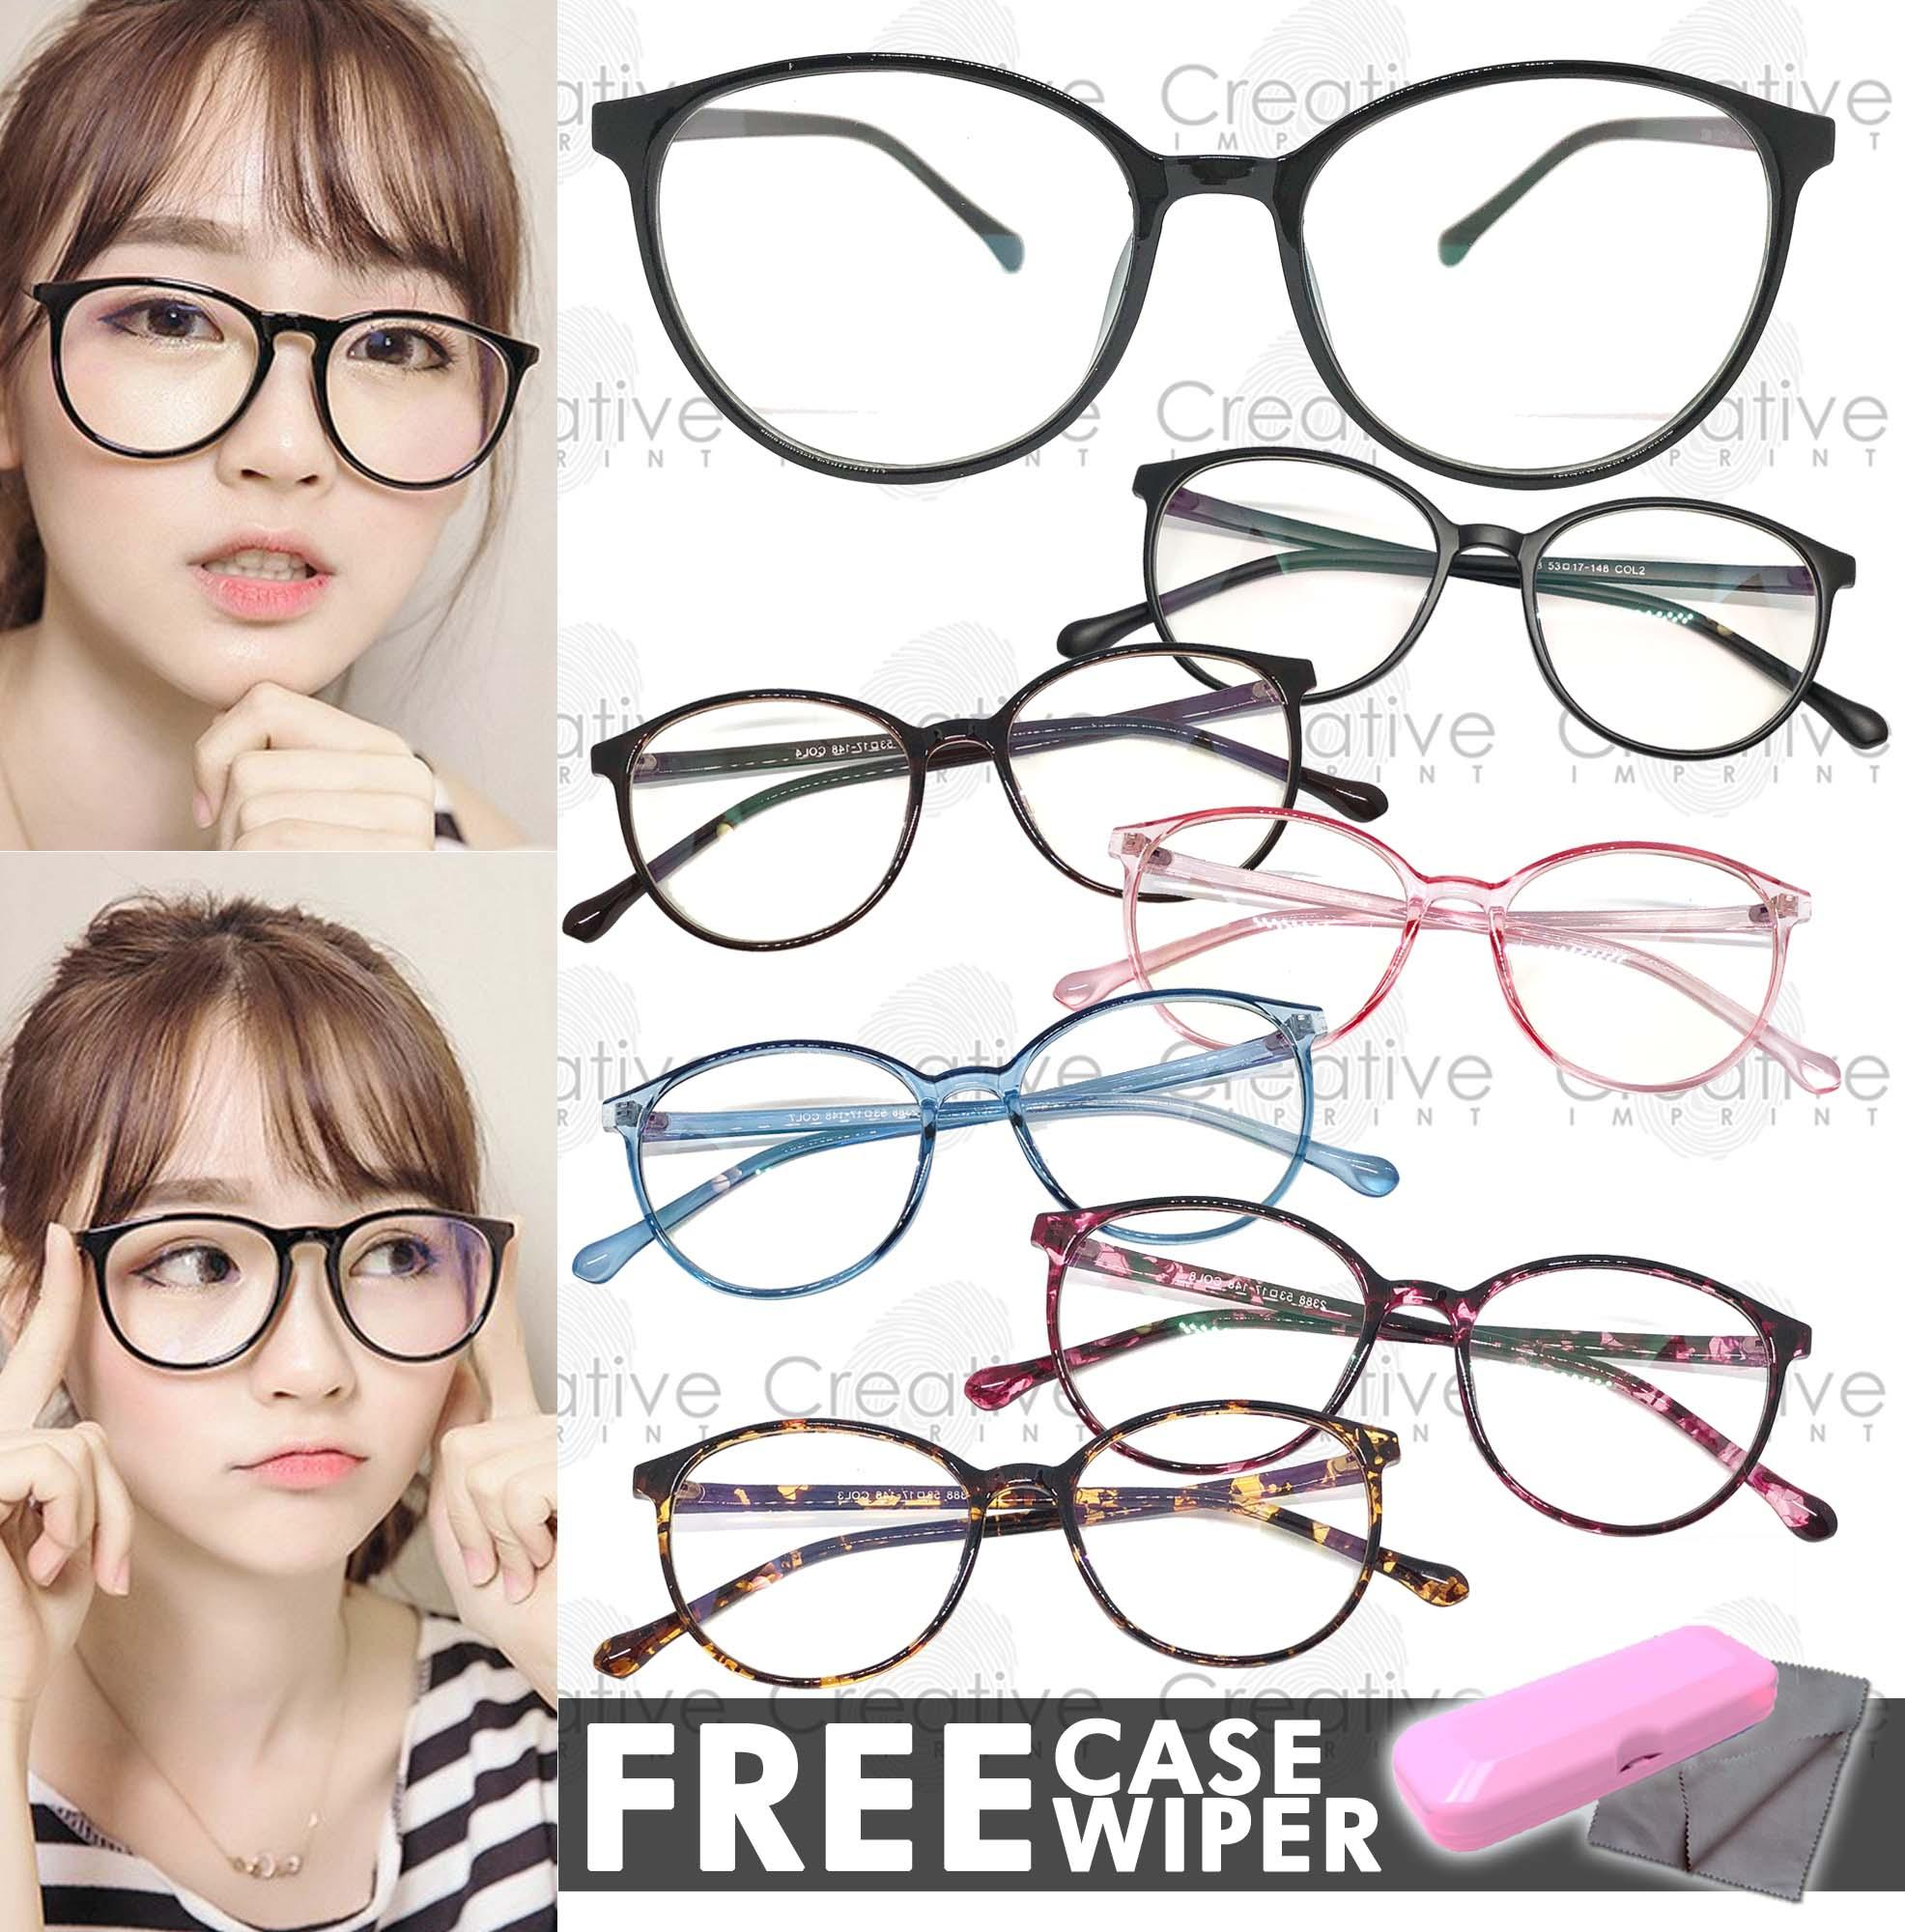 0a44be8f4b7 Creative Imprint Eyeglasses Anti-Radiation Lens Anti-Fatigue Anti-Blue  Light Flexible Computer